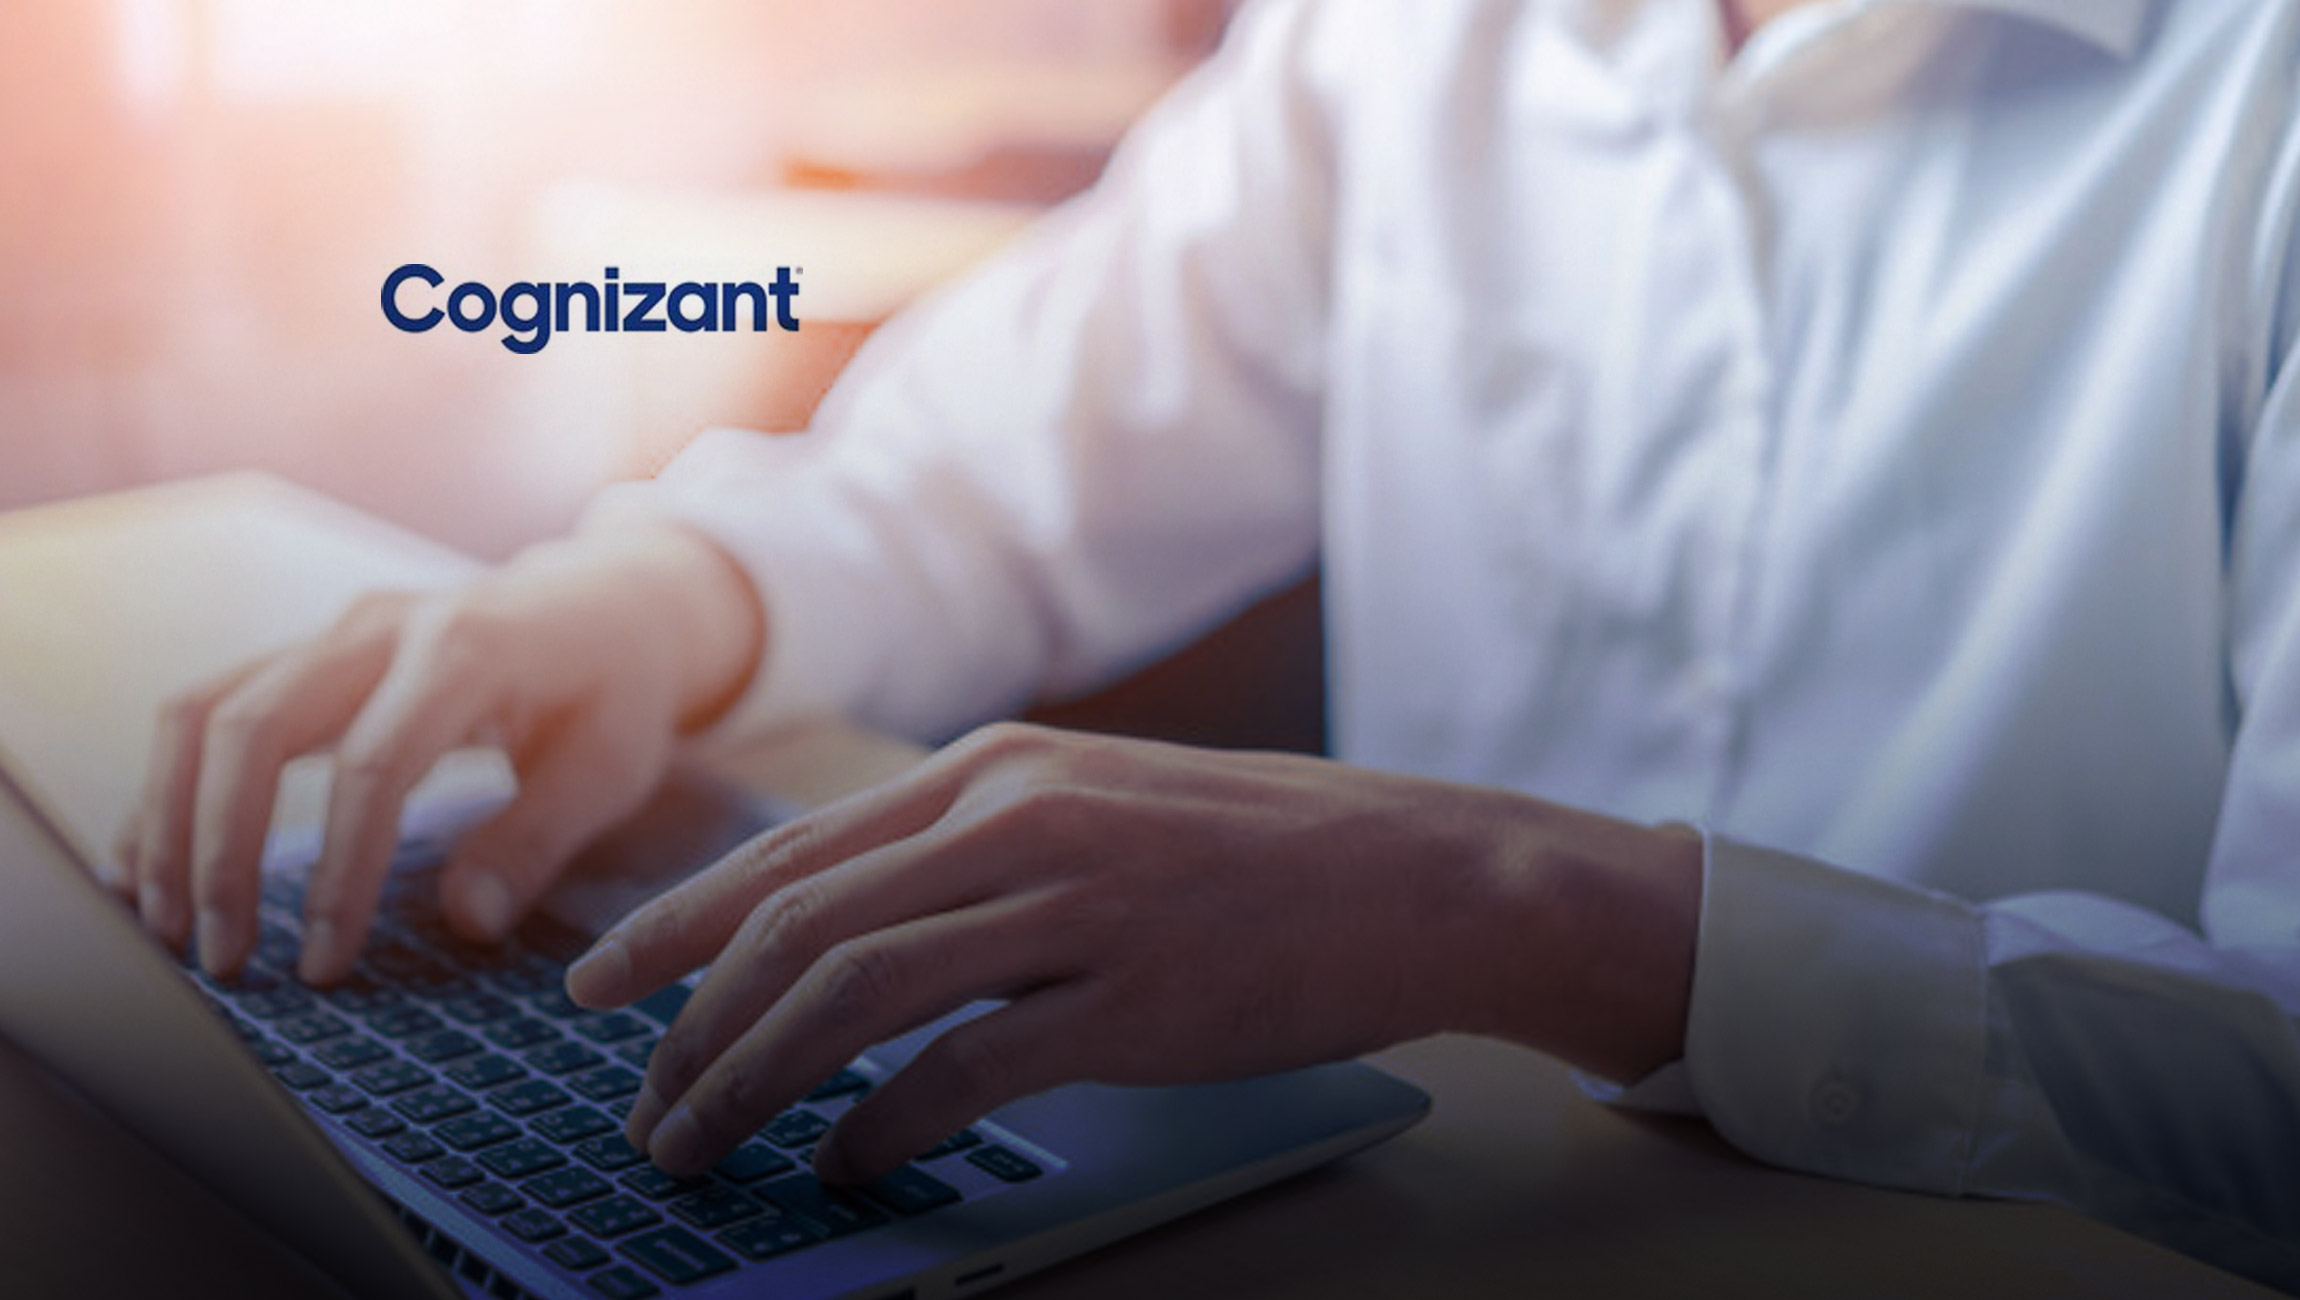 Cognizant to Acquire Tin Roof Software to Expand Digital Engineering Services